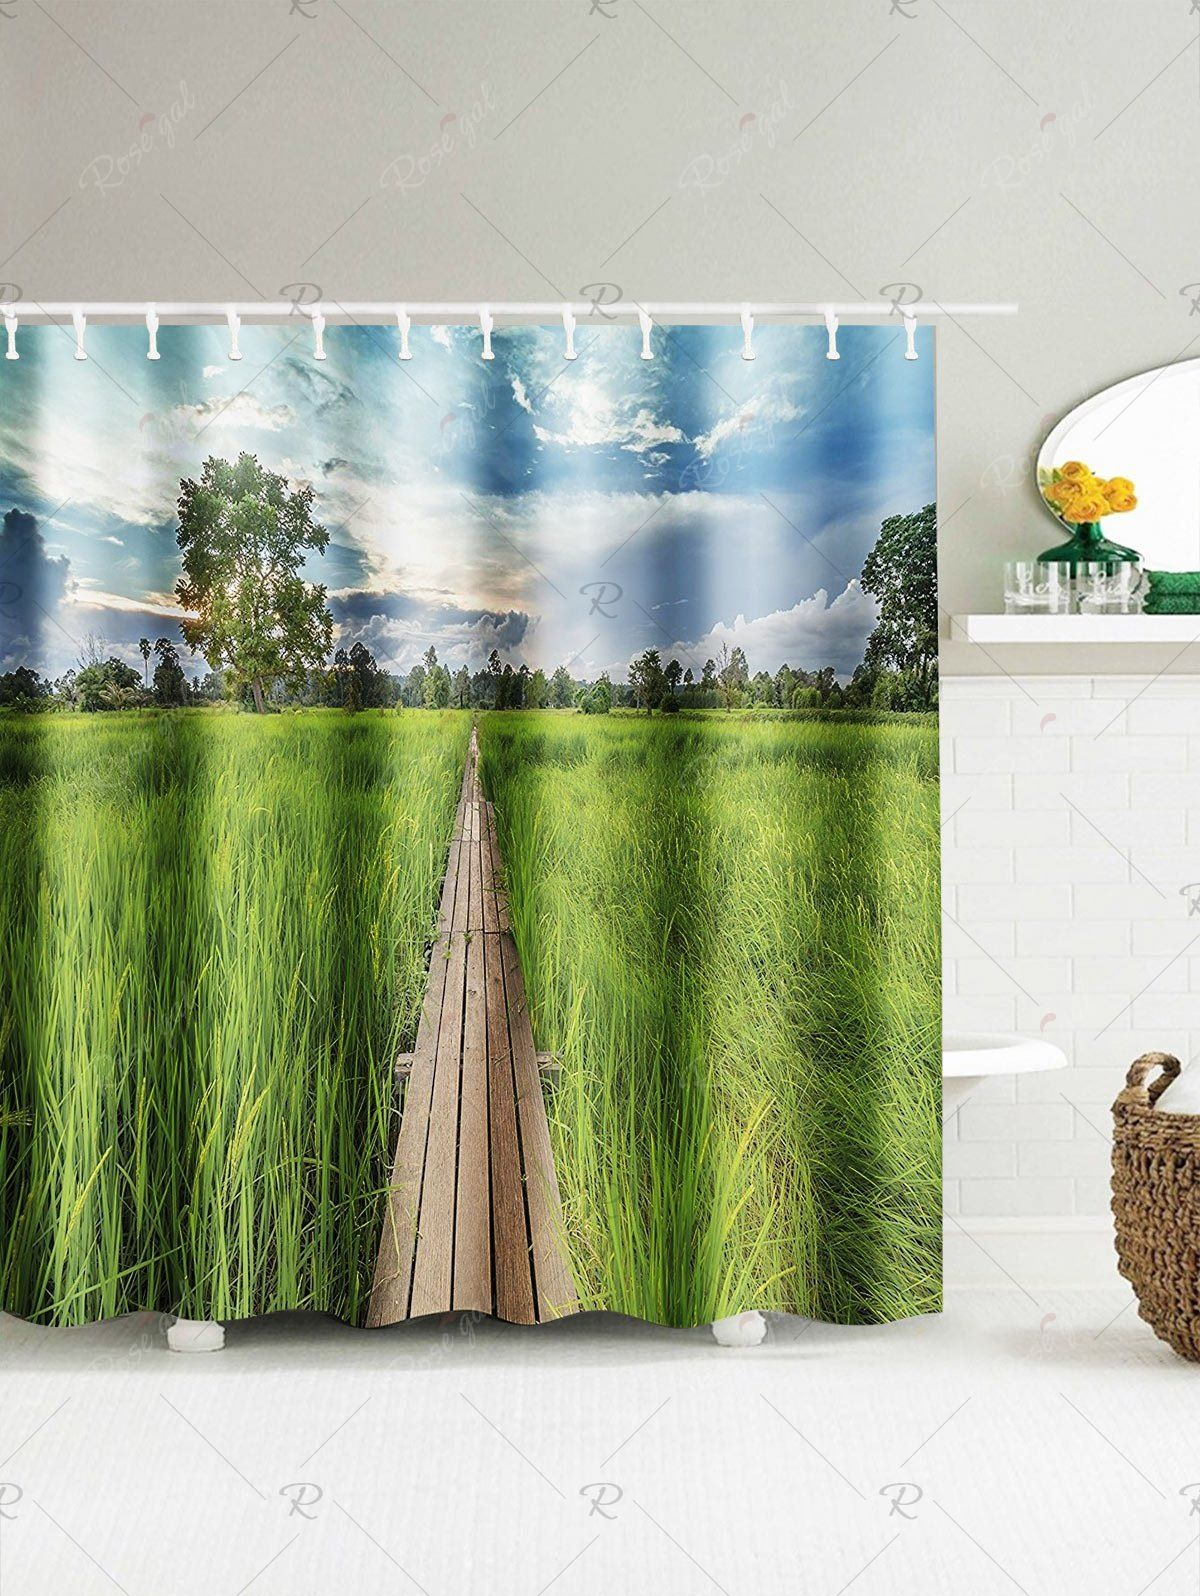 Paddy Field Landscape Shower Curtain Curtains Curtain Material